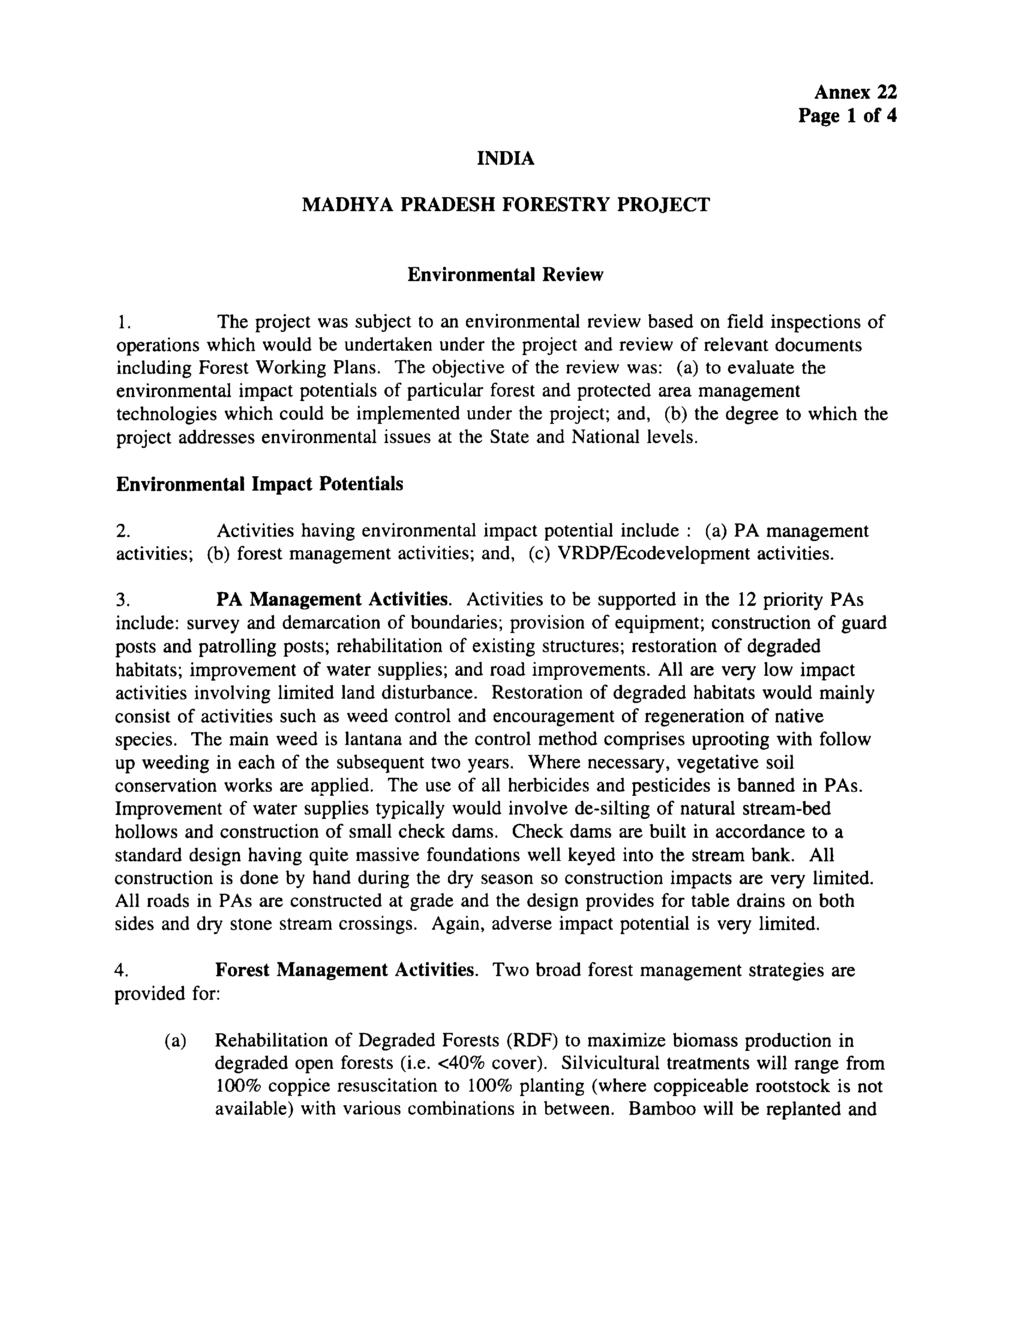 Annex 22 Page 1 of 4 INDIA MADHYA PRADESH FORESTRY PROJECT Environmental Review 1.